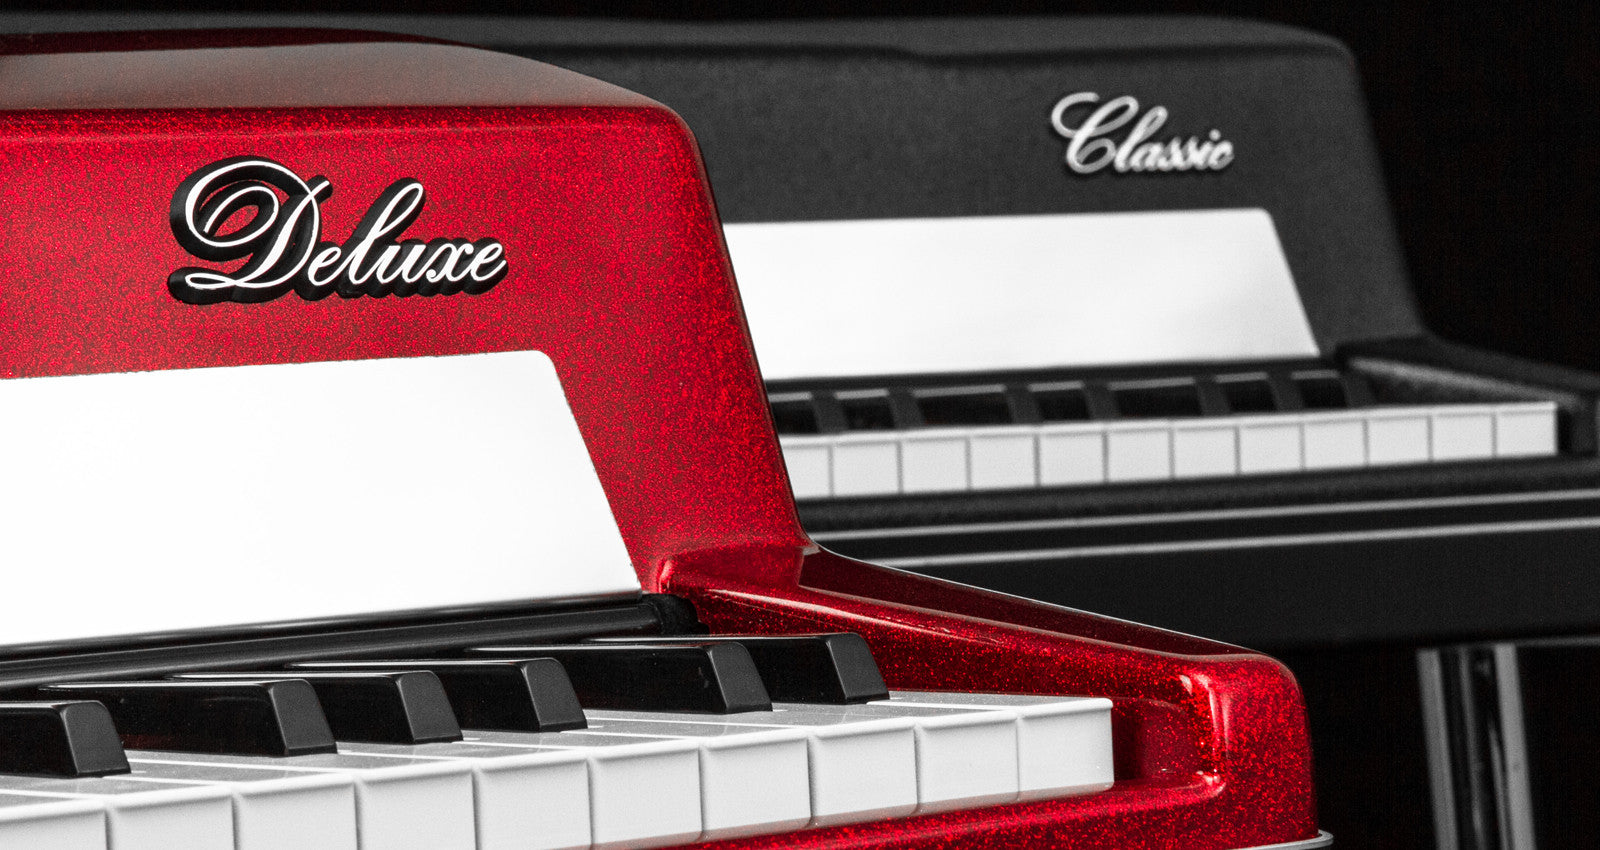 <strong>Vintage Vibe Pianos</strong> | Classic vs Deluxe?